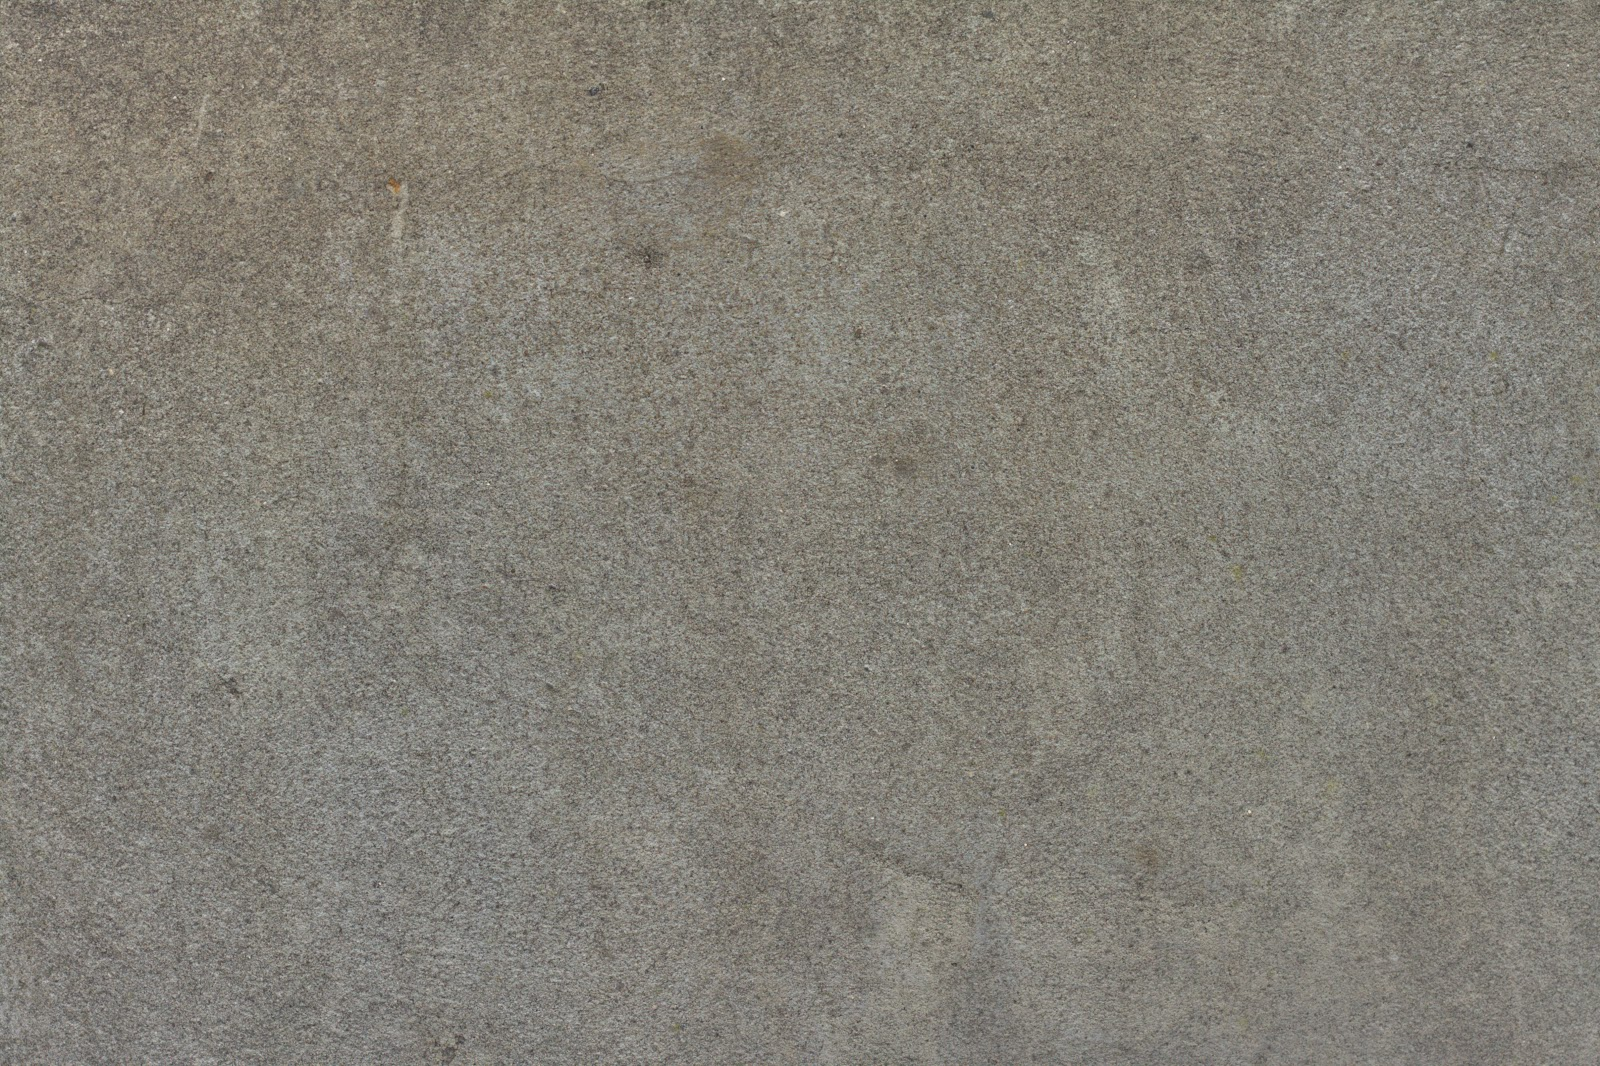 (Concrete 23) Granite rough dirty concrete stone texture 4770x3178